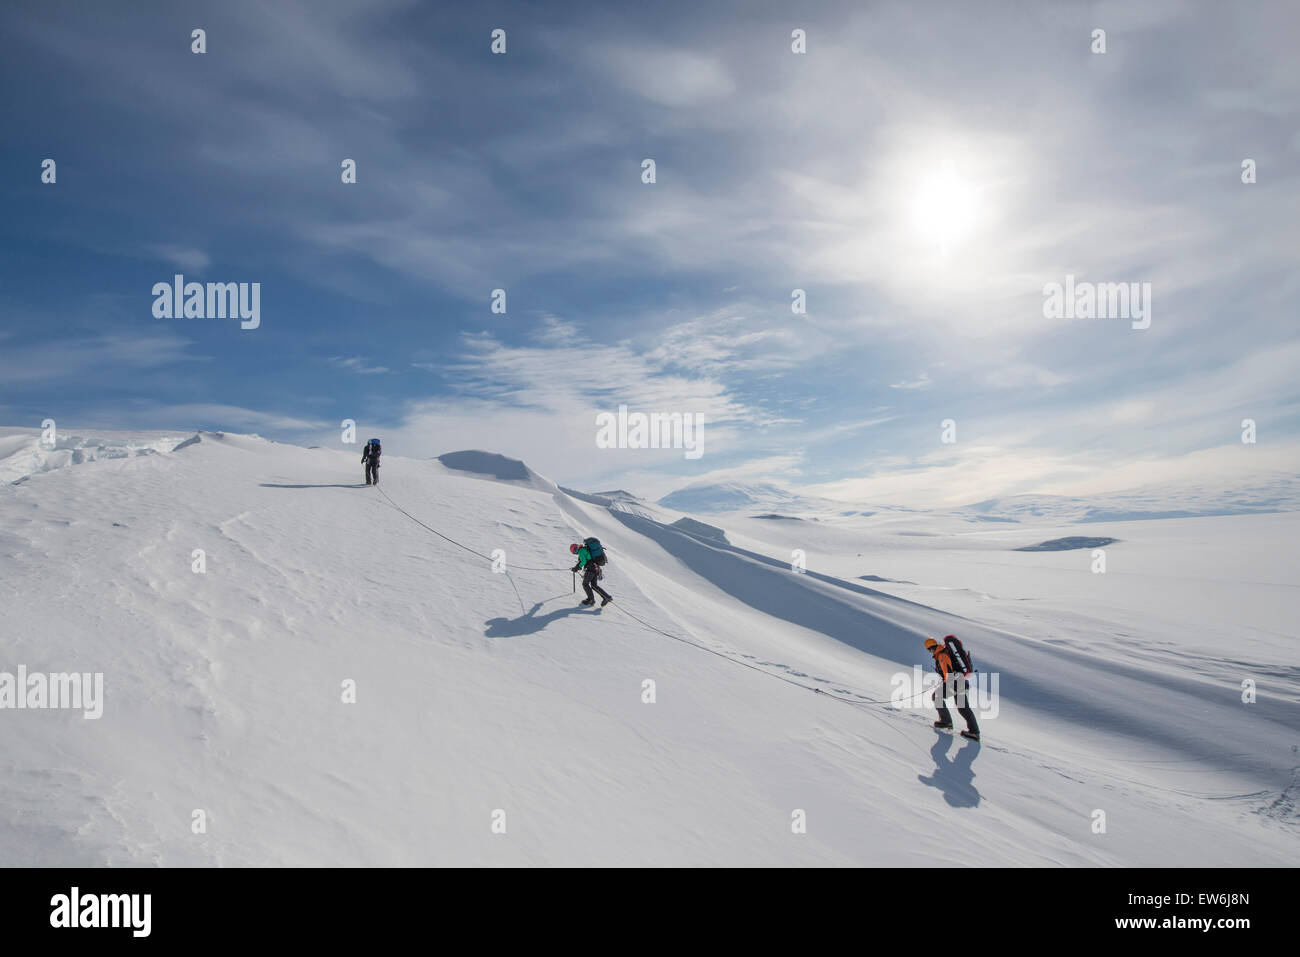 Members of the Joint Antarctic Search and Rescue Team train near crevasses on Ross Island, Antarctica. - Stock Image